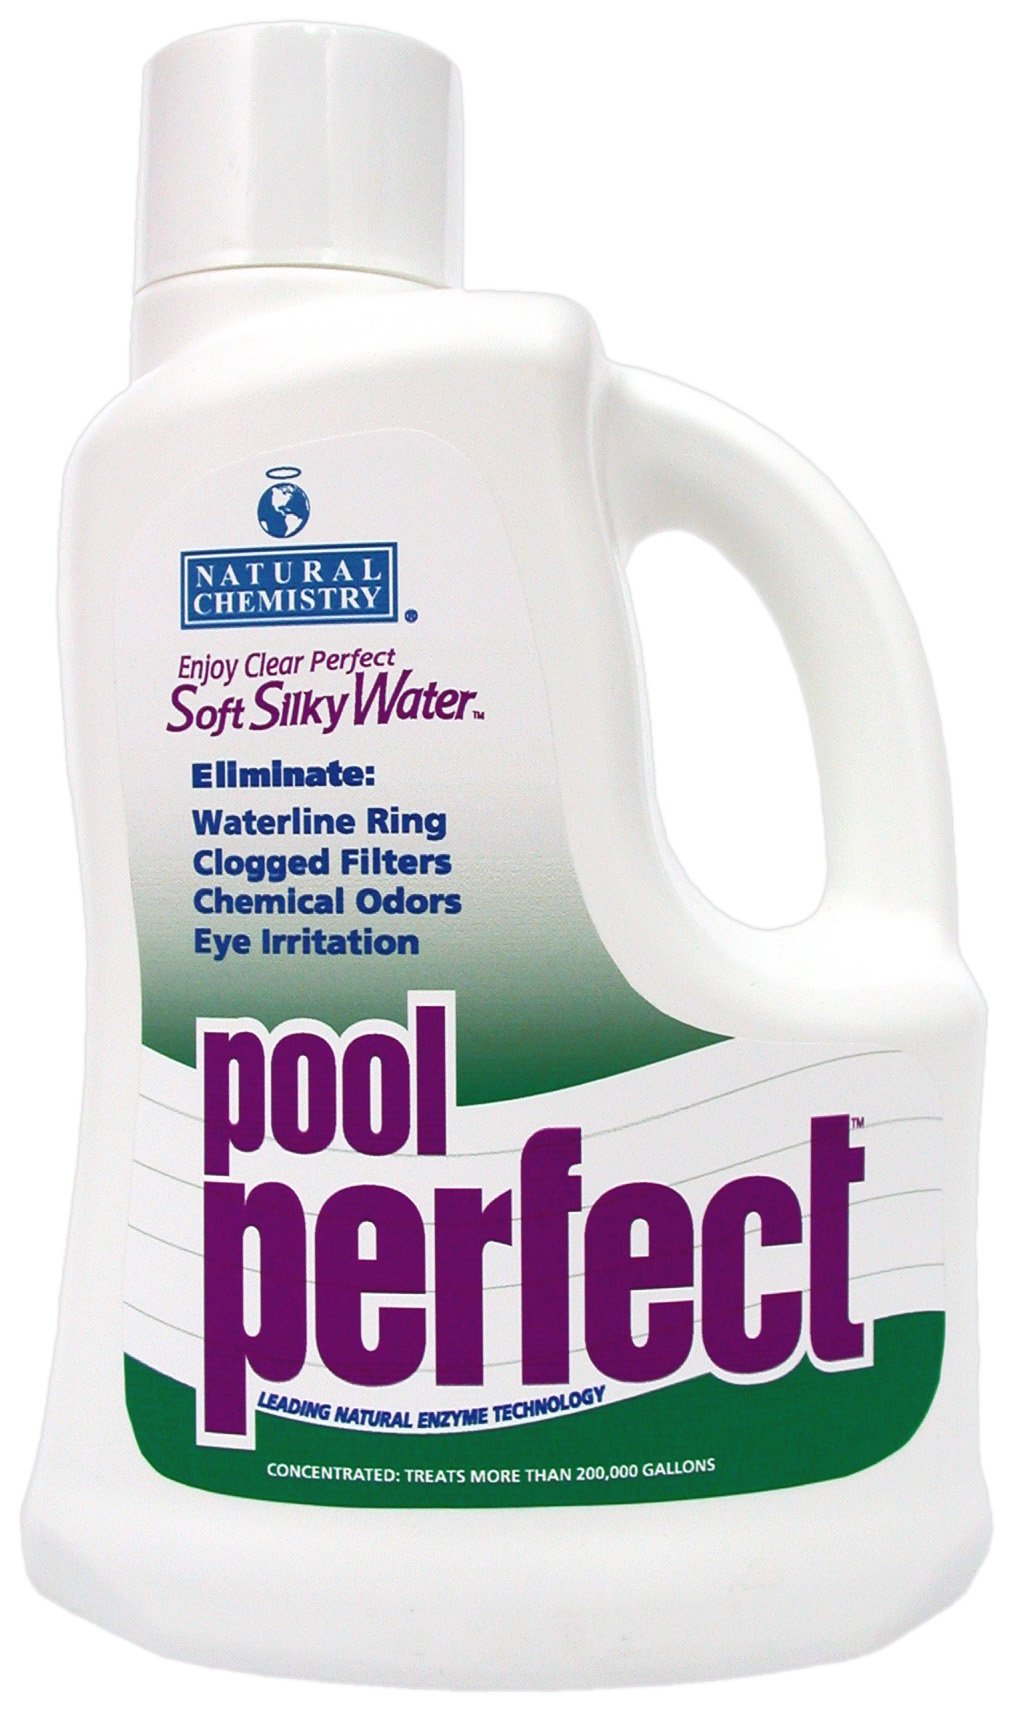 Natural Chemistry 3121 Pool Perfect Concentrate Pool Water Cleaner, 3-Liter